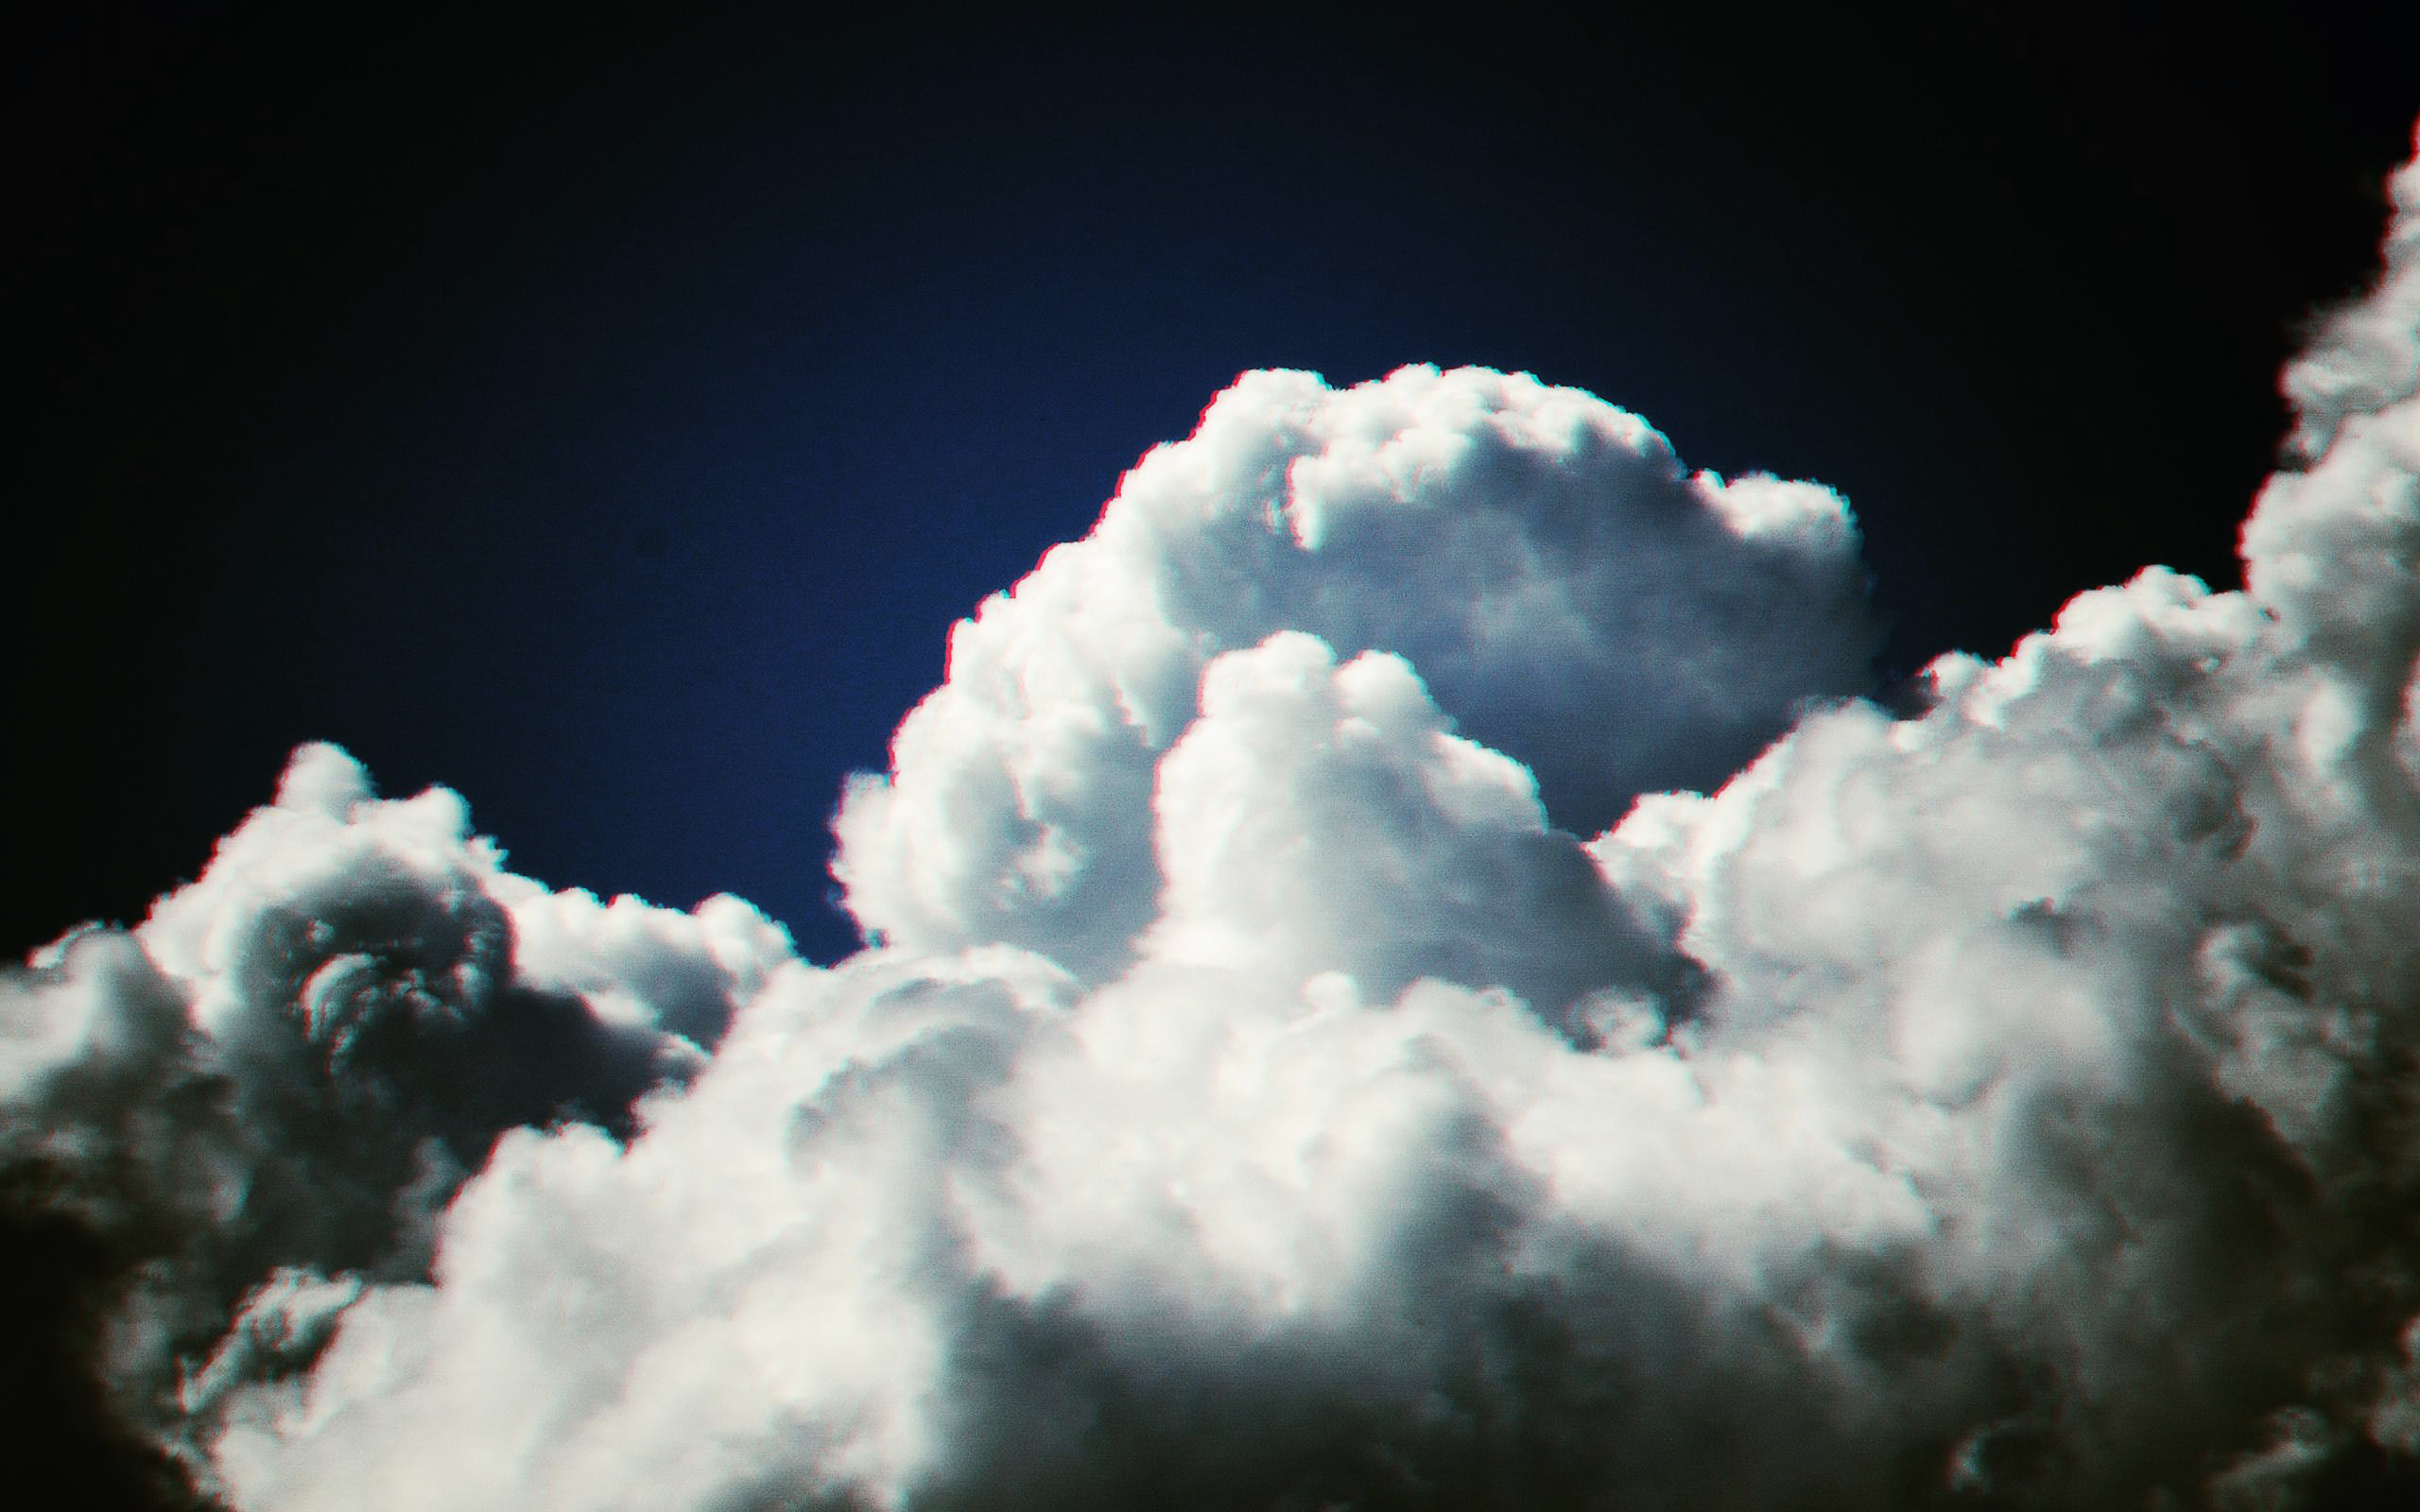 3d clouds wallpaper desktop wallpaper description 3d clouds wallpaper 2560x1600